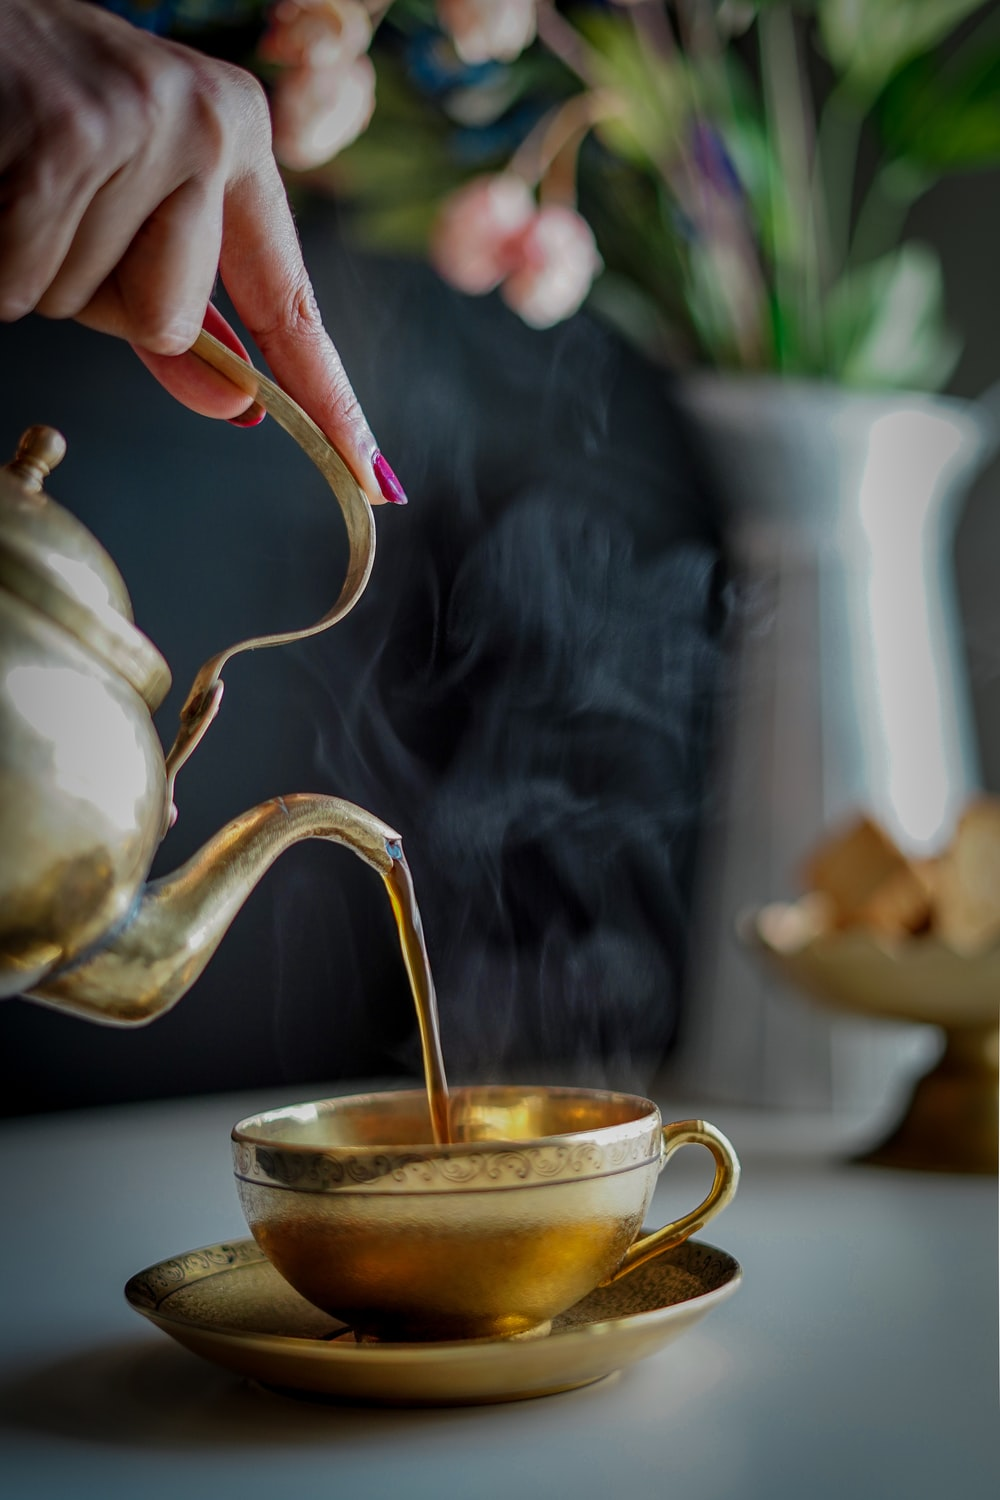 750 Hot Tea Pictures Hd Download Free Images On Unsplash